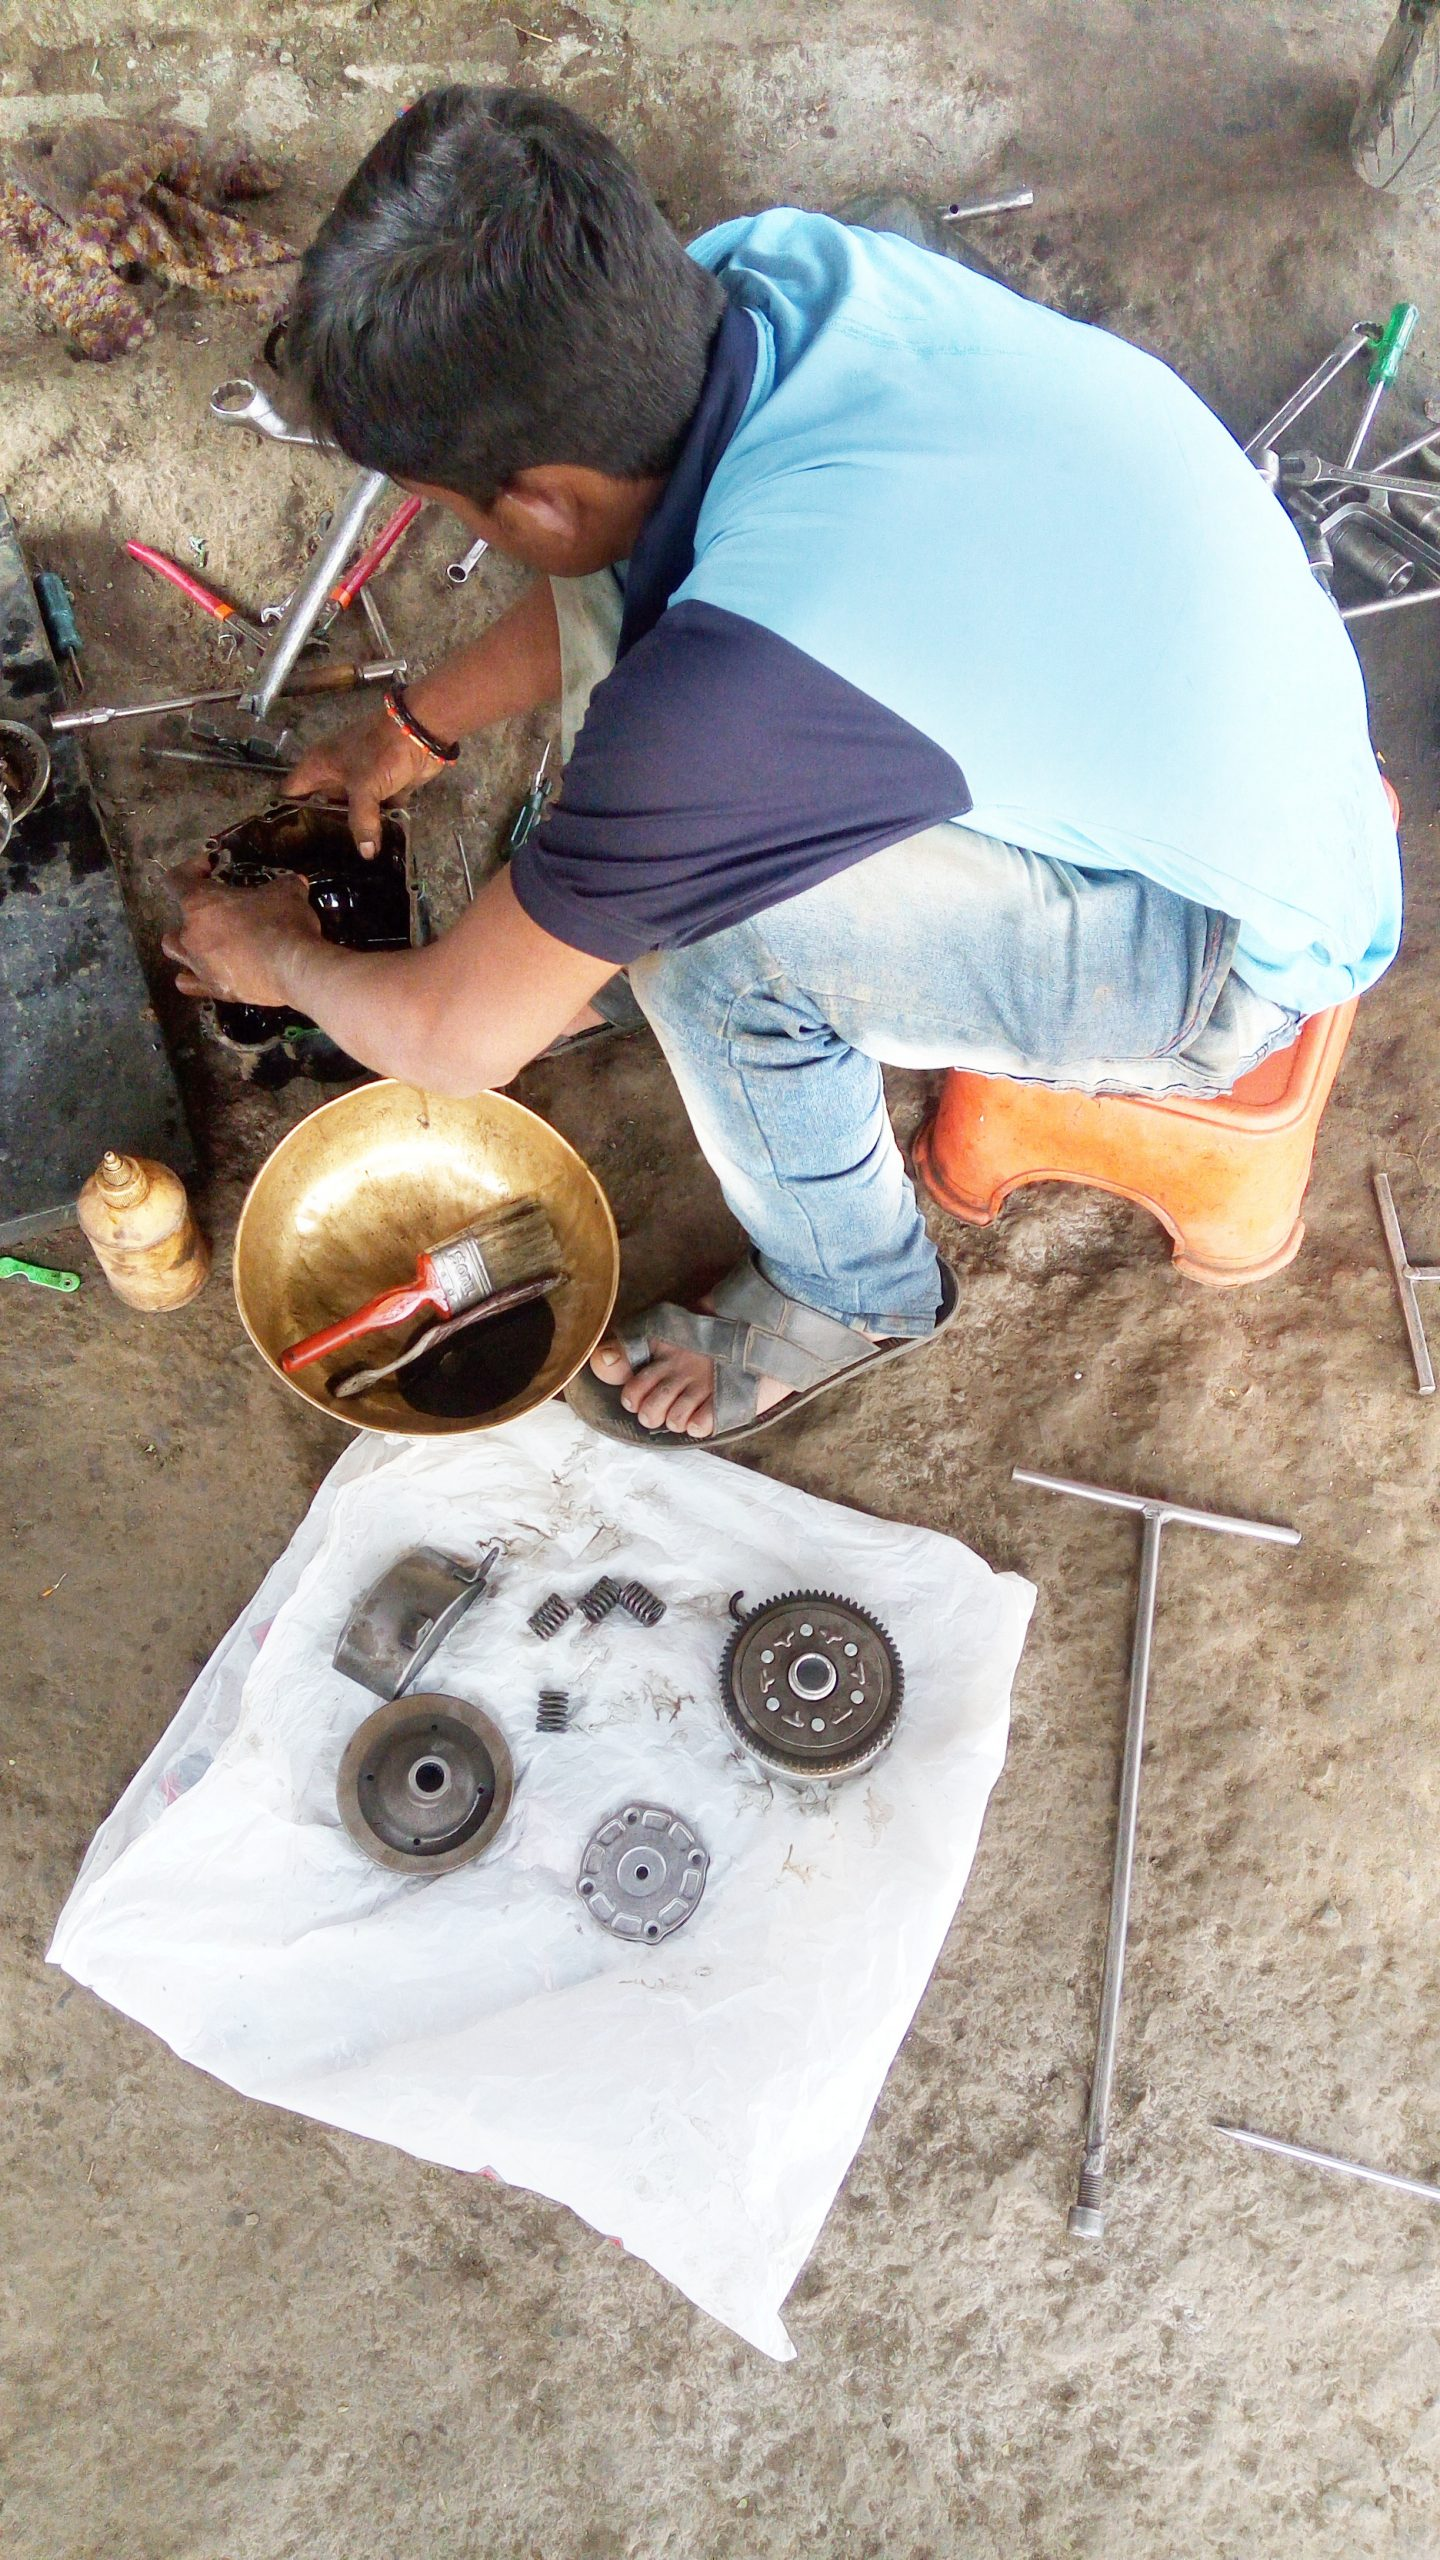 A mechanic working with tools